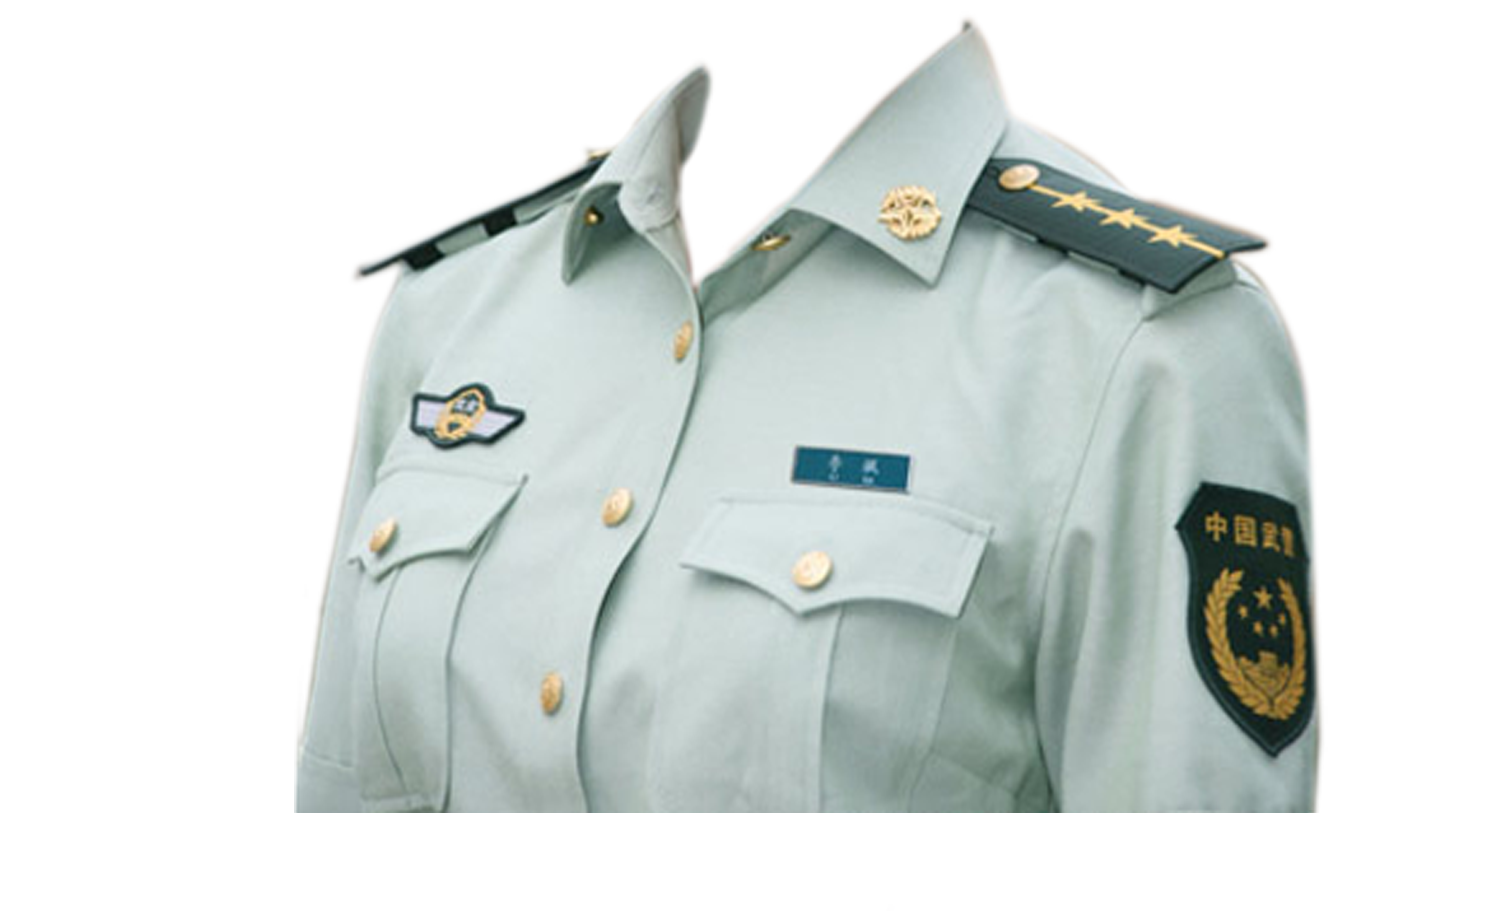 Chinese Police Uniform PNG Image.